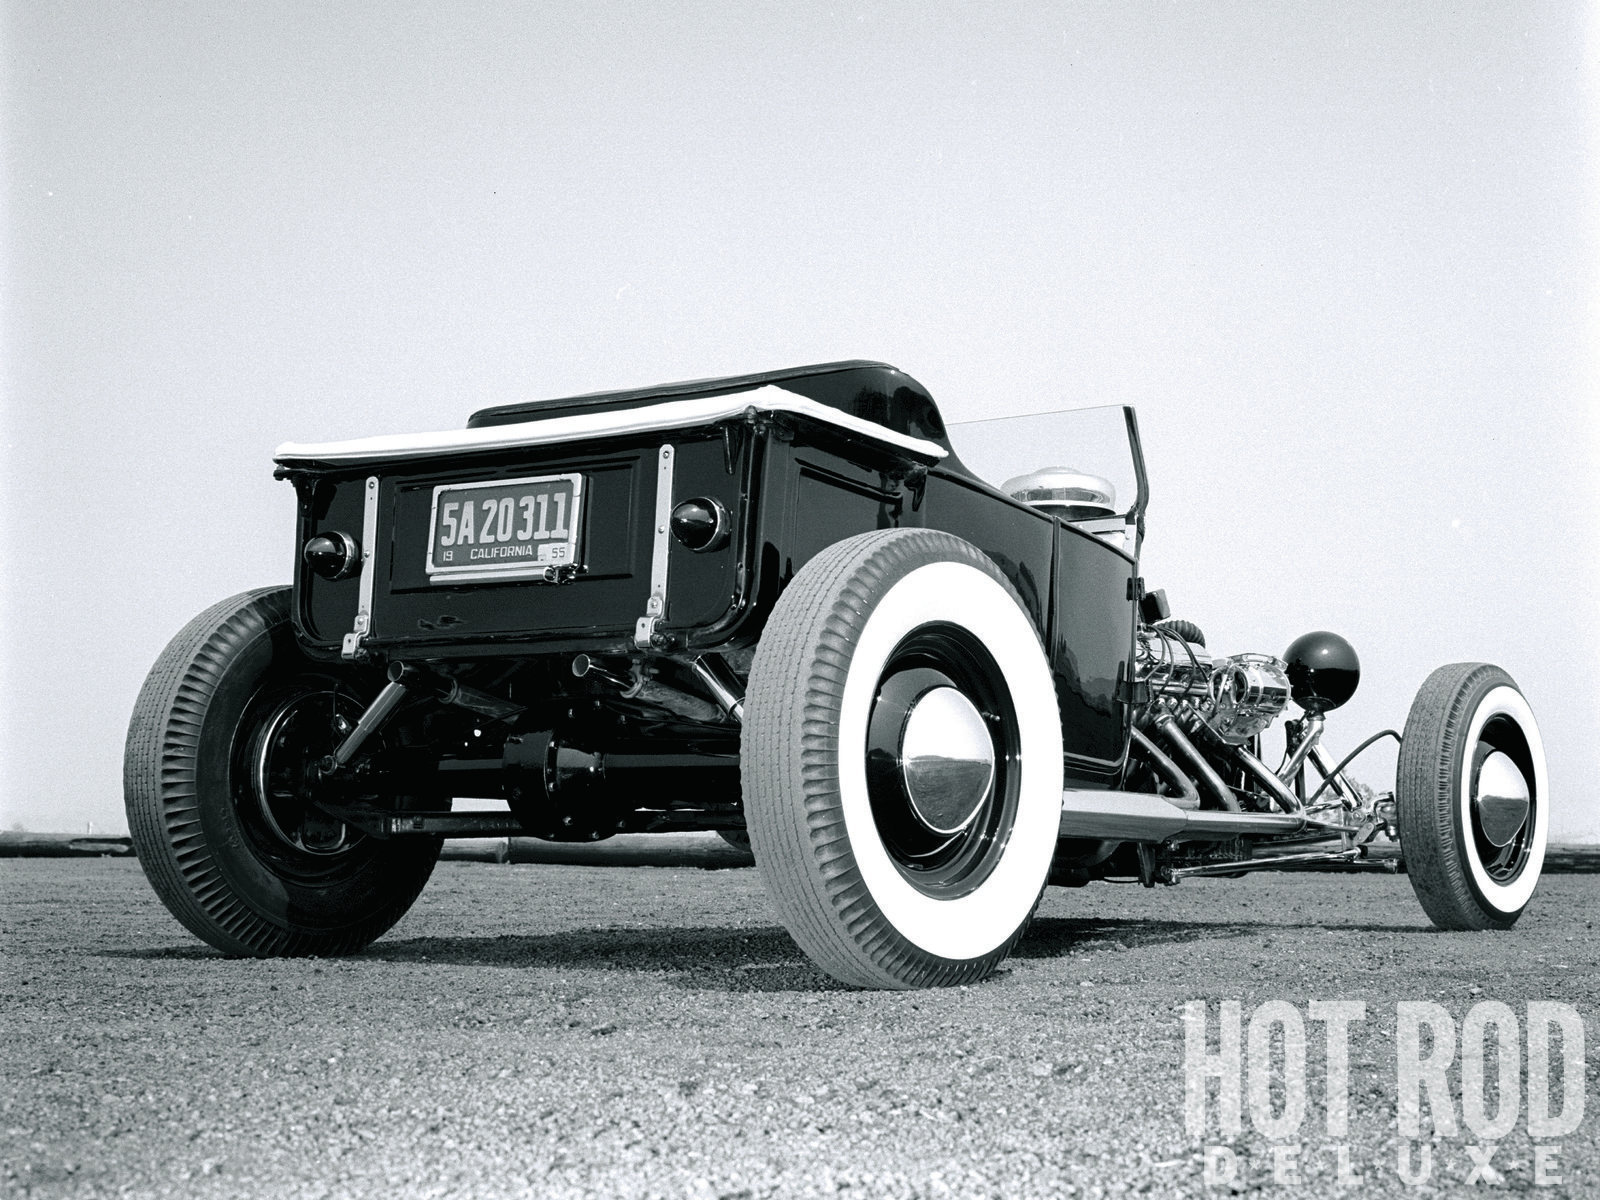 Norm's unprecedented approach began by chopping 20 inches from the rear of a Model-A chassis, shortening a Model-A pickup bed to match, and remounting the stock rear crossmember on top of the abbreviated rails. The '22 T body was channeled 6 inches.